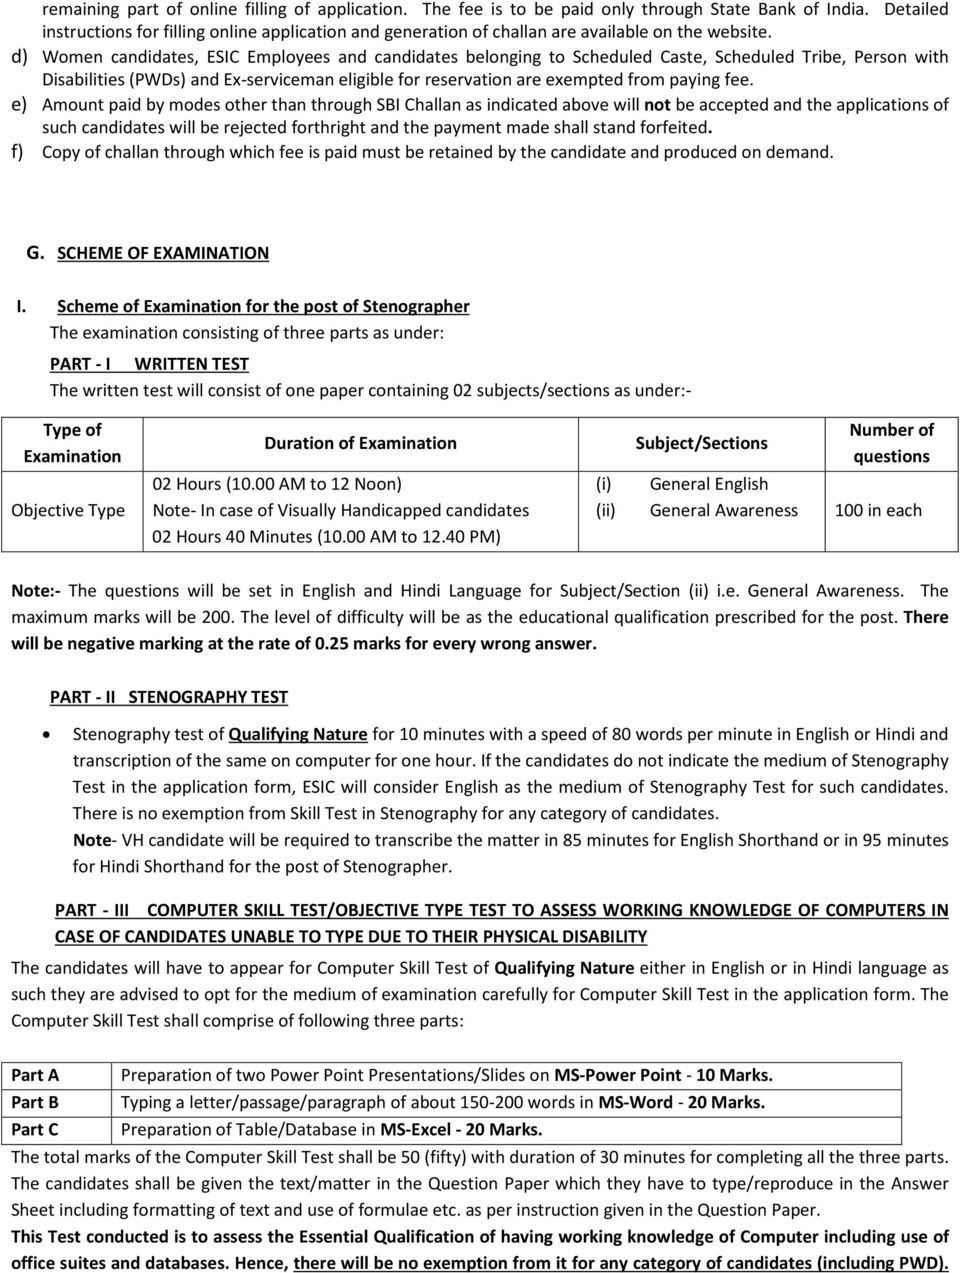 RECRUITMENT FOR THE POST OF STENO, UDC & MTS IN GUJARAT